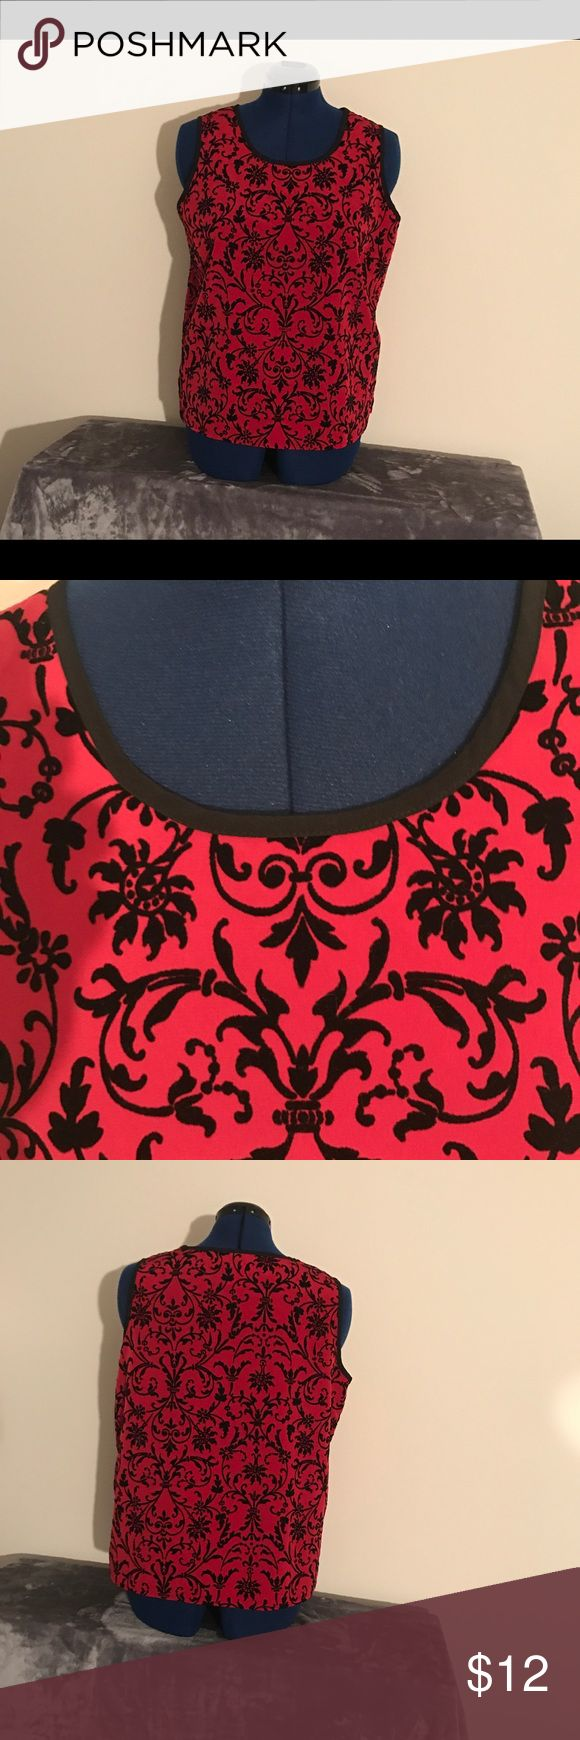 """susan graver/styles red/black sleeveless top, L This gorgeous susan graver/styles sleeveless top is a vibrant red with velvety black scrollwork front and back. Beautiful alone or under a blazer.  4"""" bottom side slits.  True to its Size Large.  Machine wash cold delicate.  Very good condition. Tops"""